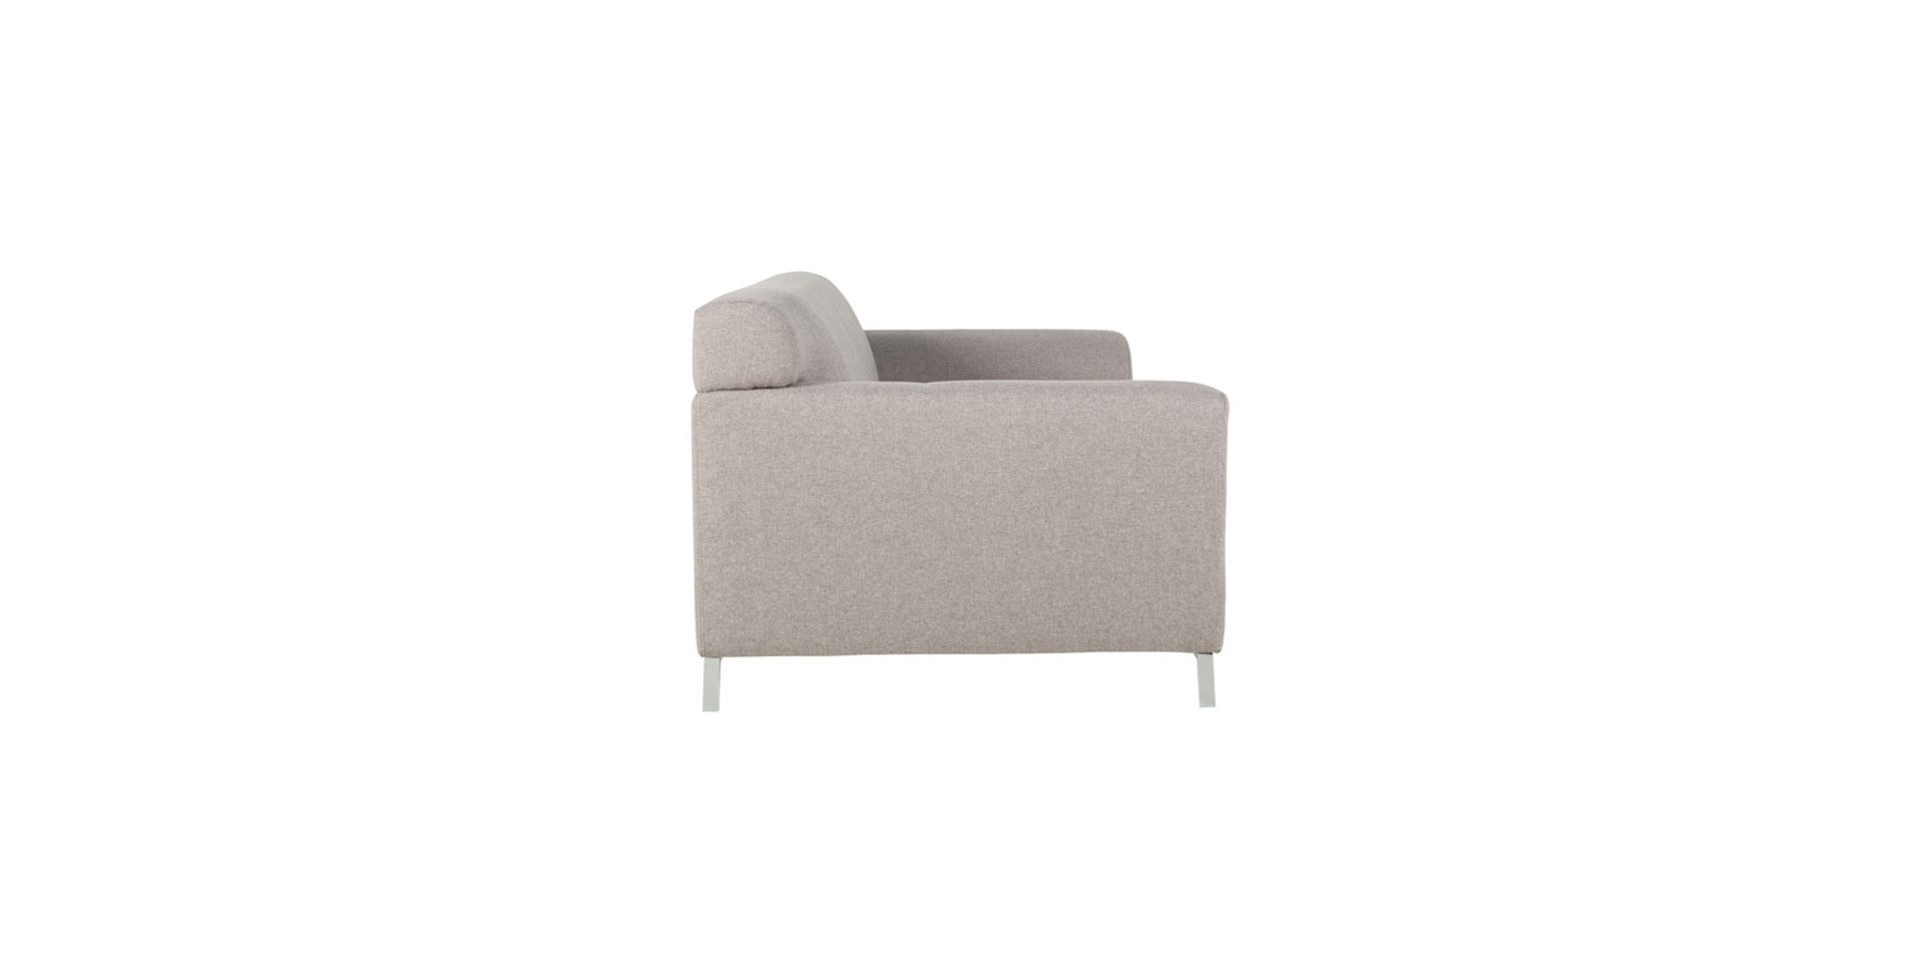 sits-rosa-canape-3seater_sony2_beige_3